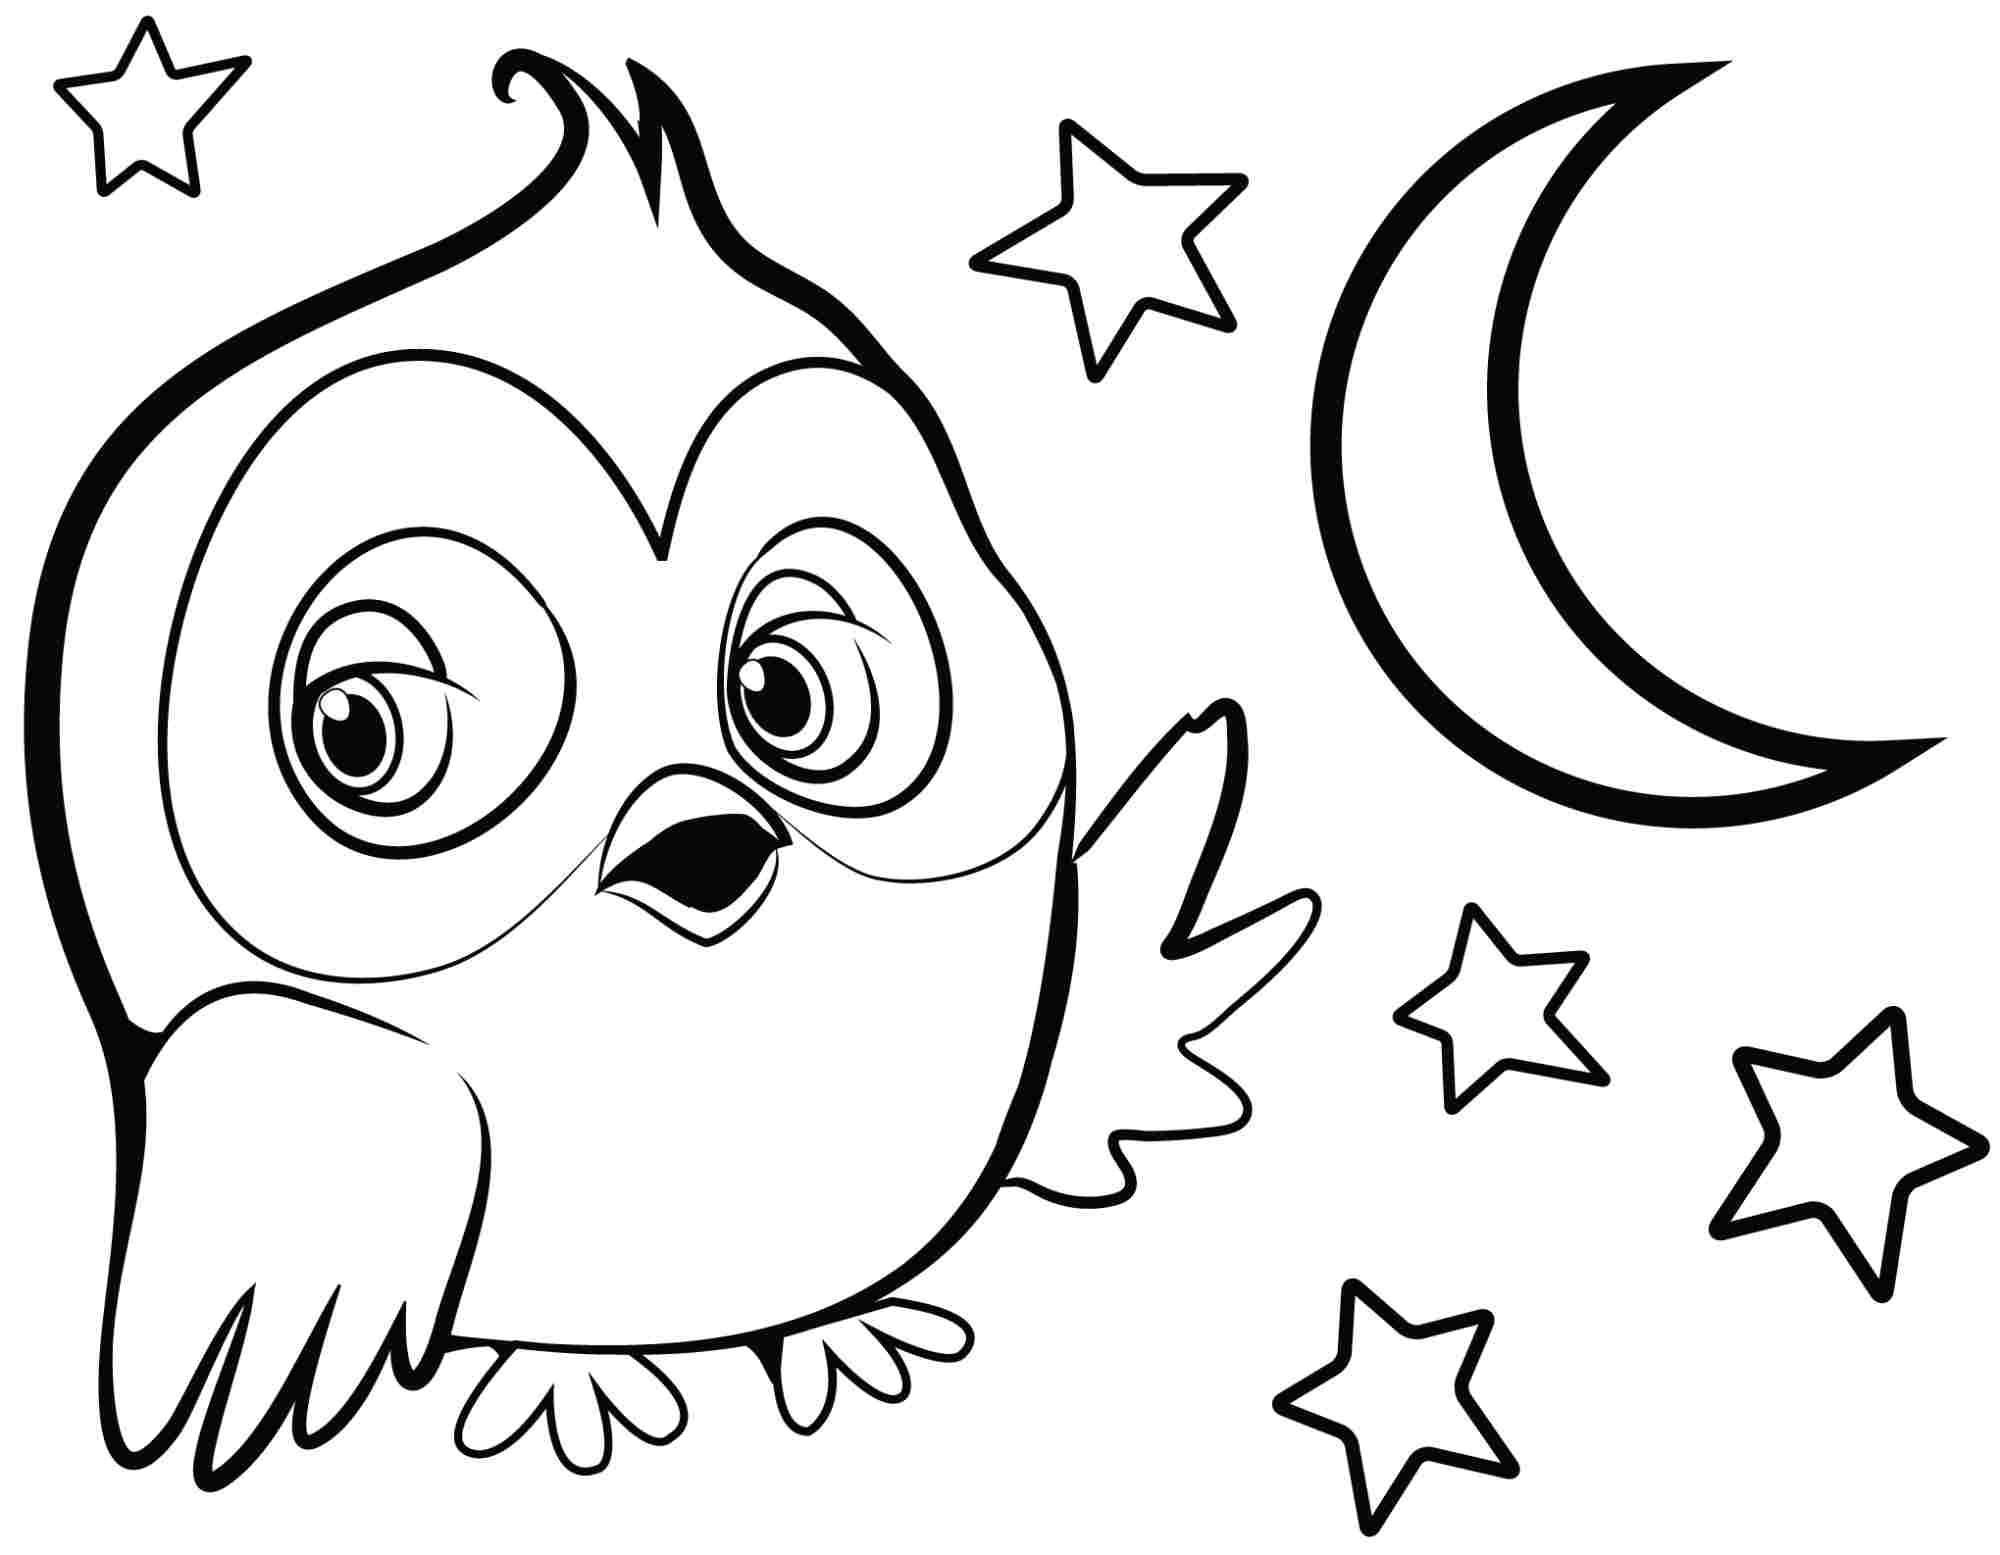 Large Coloring Books For Toddlers  Coloring Pages for Kindergarten Bestofcoloring